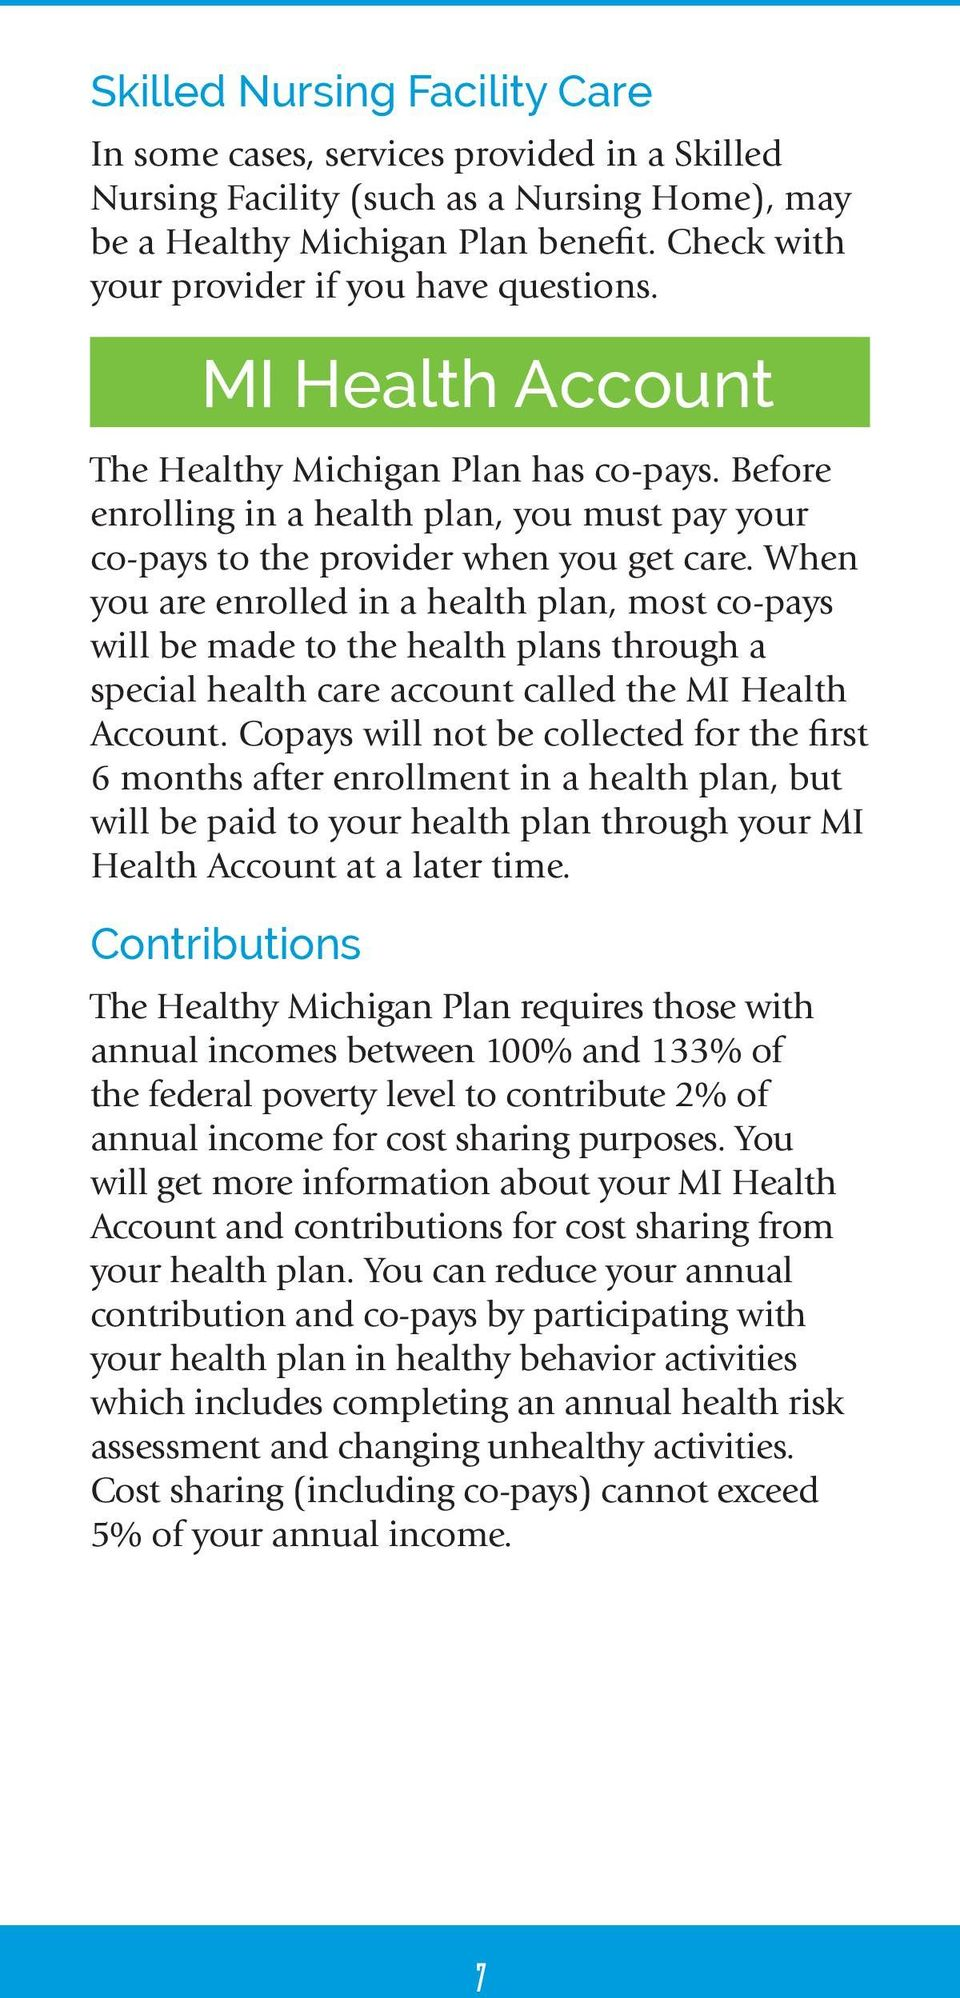 When you are enrolled in a health plan, most co-pays will be made to the health plans through a special health care account called the MI Health Account.